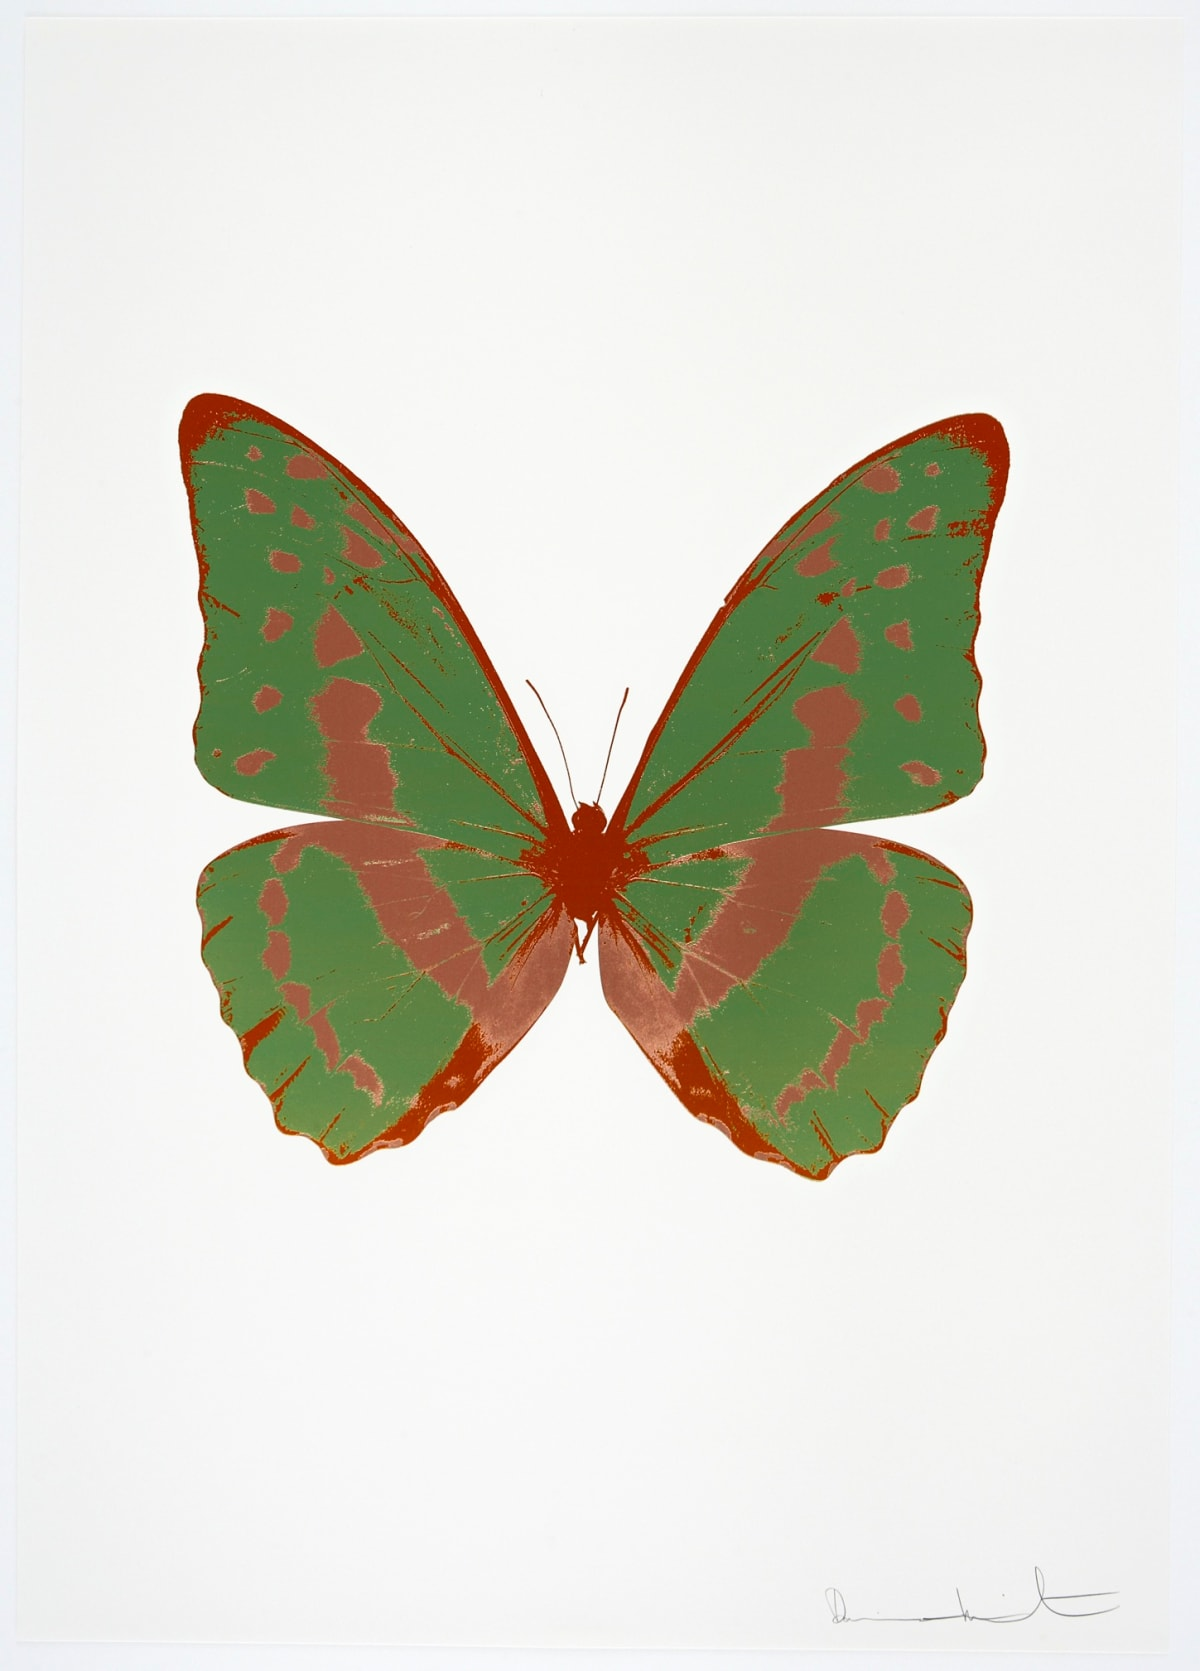 Damien Hirst The Souls III - Leaf Green/Rustic Copper/Prairie Copper, 2010 3 colour foil block on 300gsm Arches 88 archival paper. Signed and numbered. Published by Paul Stolper and Other Criteria 72 x 51cm OC7922 / 660-25 Edition of 15